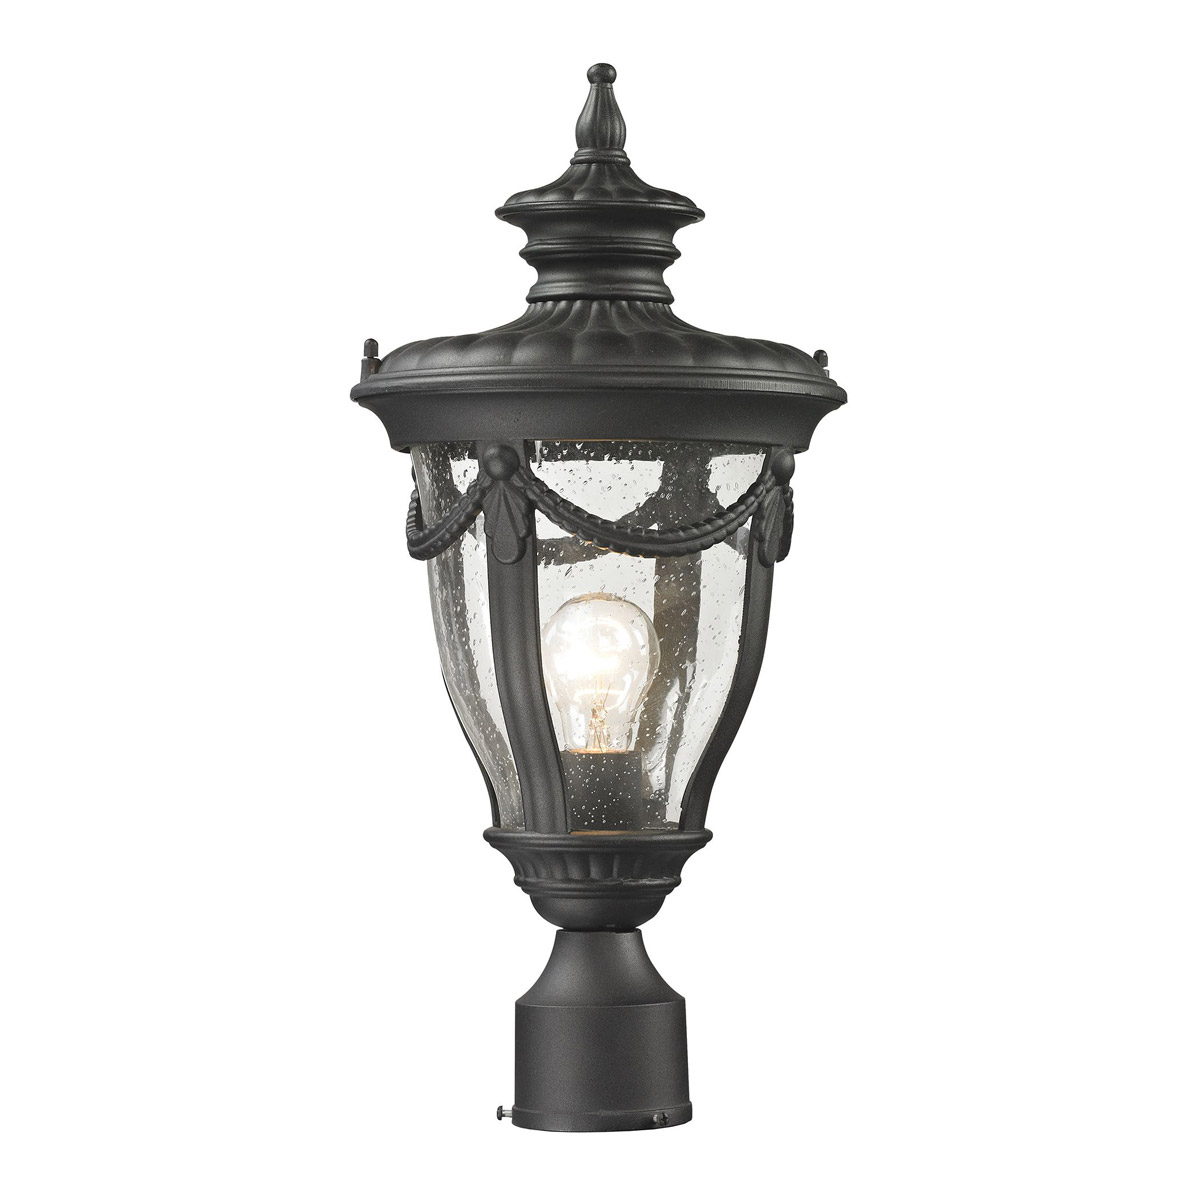 ELK Lighting Anise 45079 Outdoor Light Fixtures Brooklyn, New York - Accentuations Brand